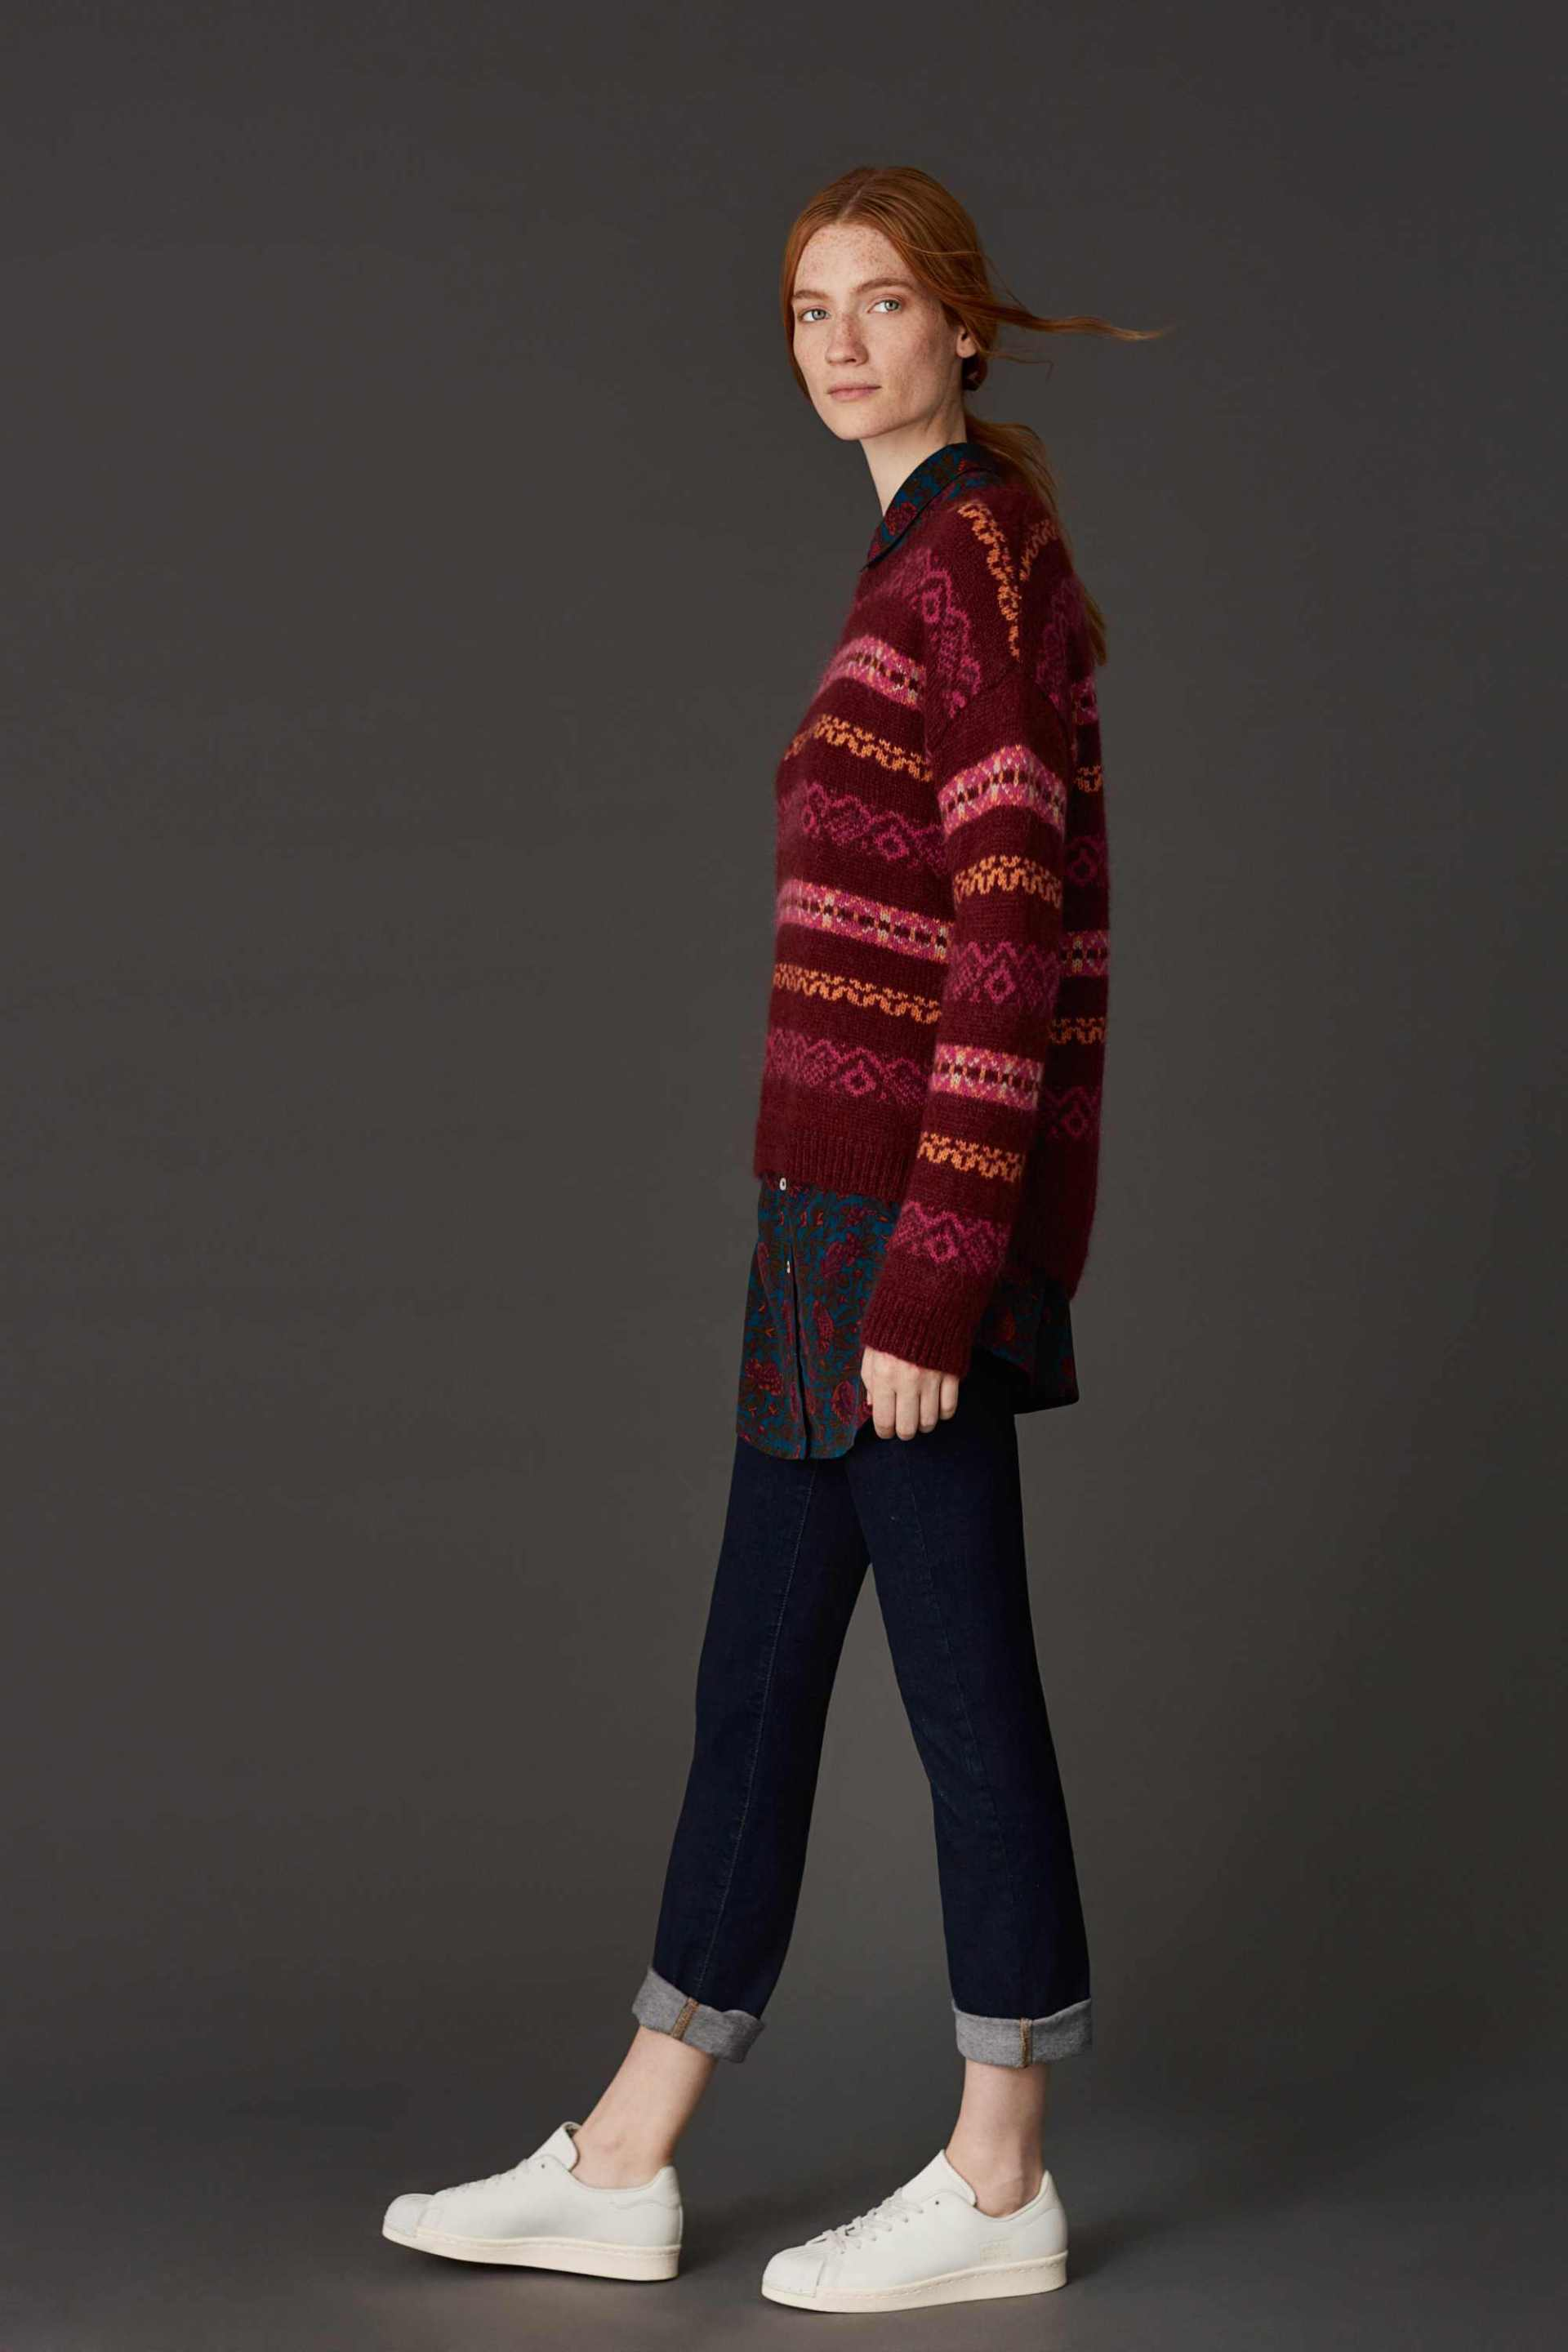 model wearing East Wool Blend Fairisle Jumper, £99; Silk Alicia Print Shirt, £149; Straight Leg Jeans, £69